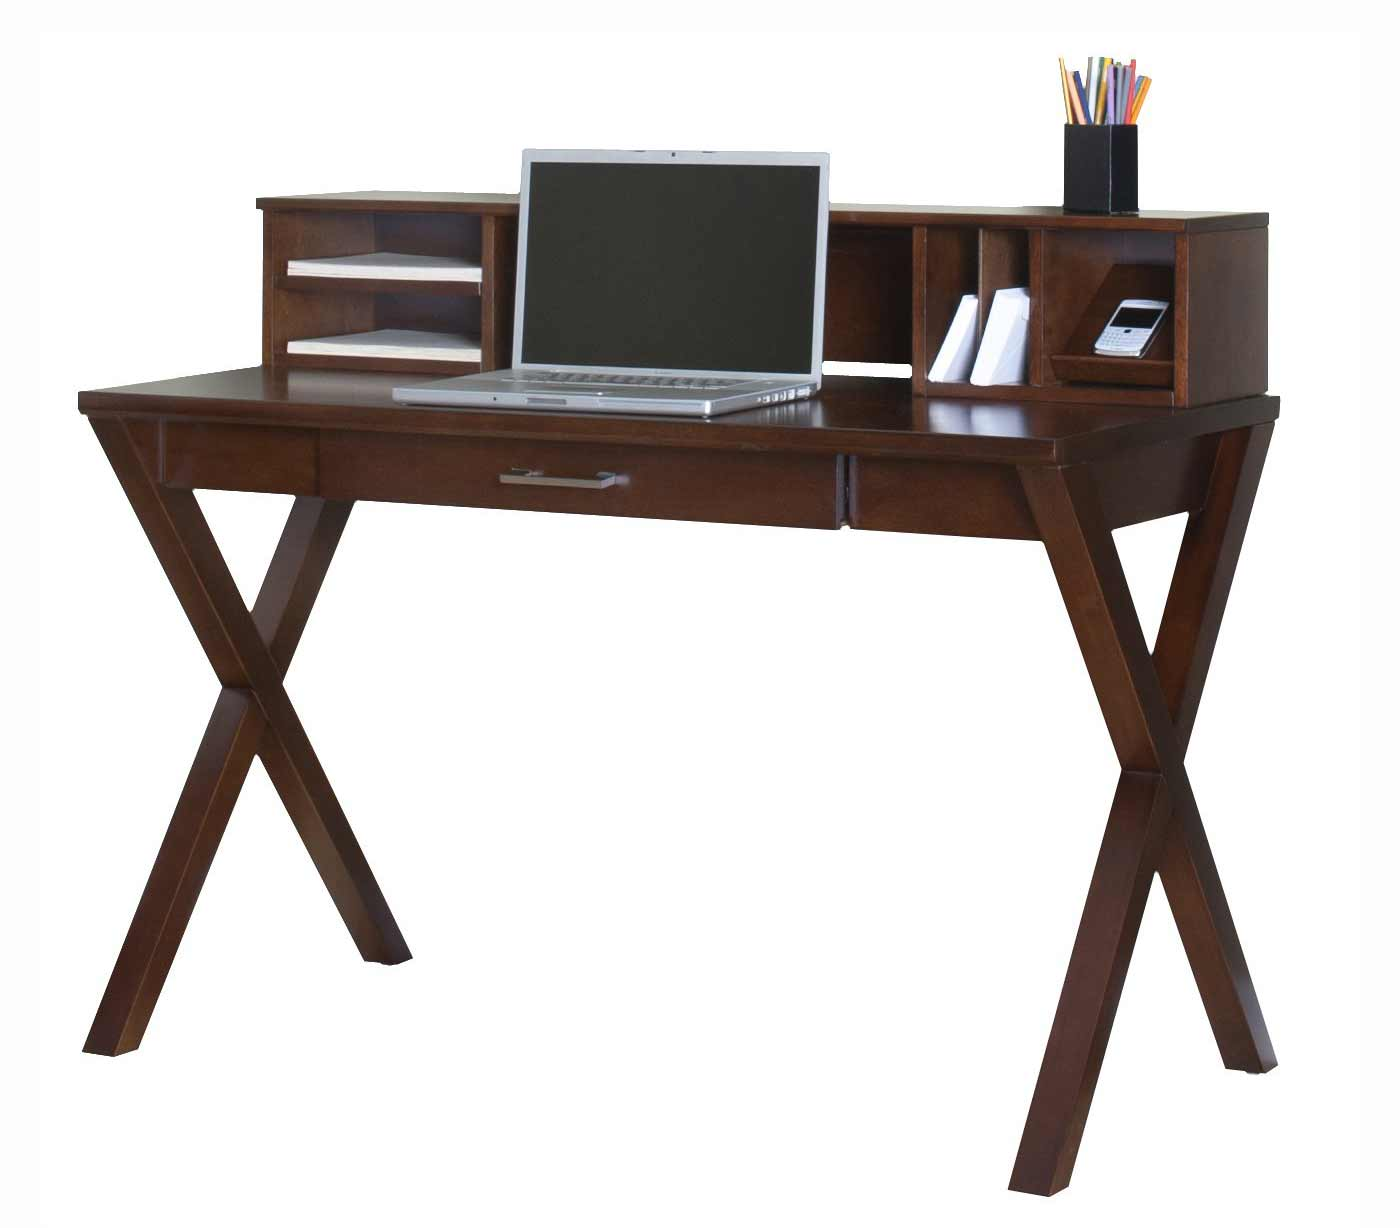 Martin worx laptop secretary desk